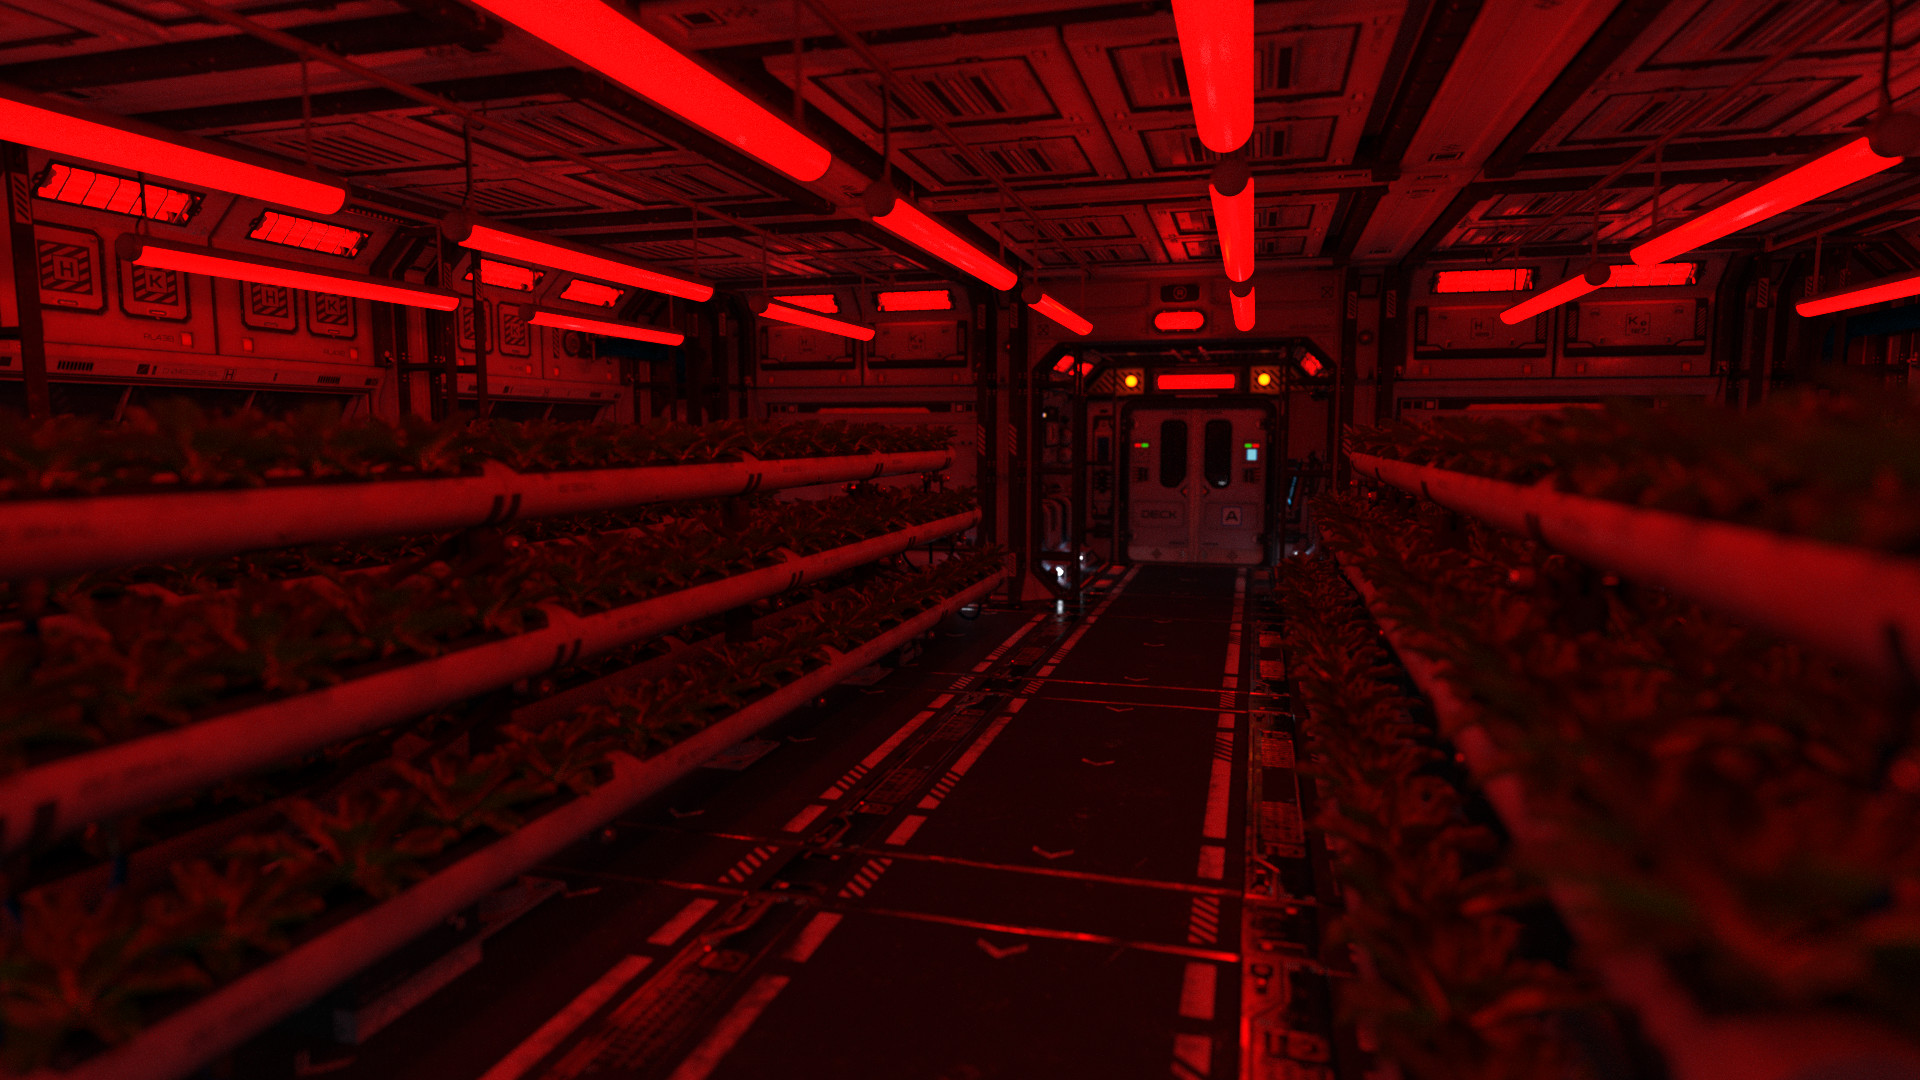 Joel lovell hydroponics room red alert